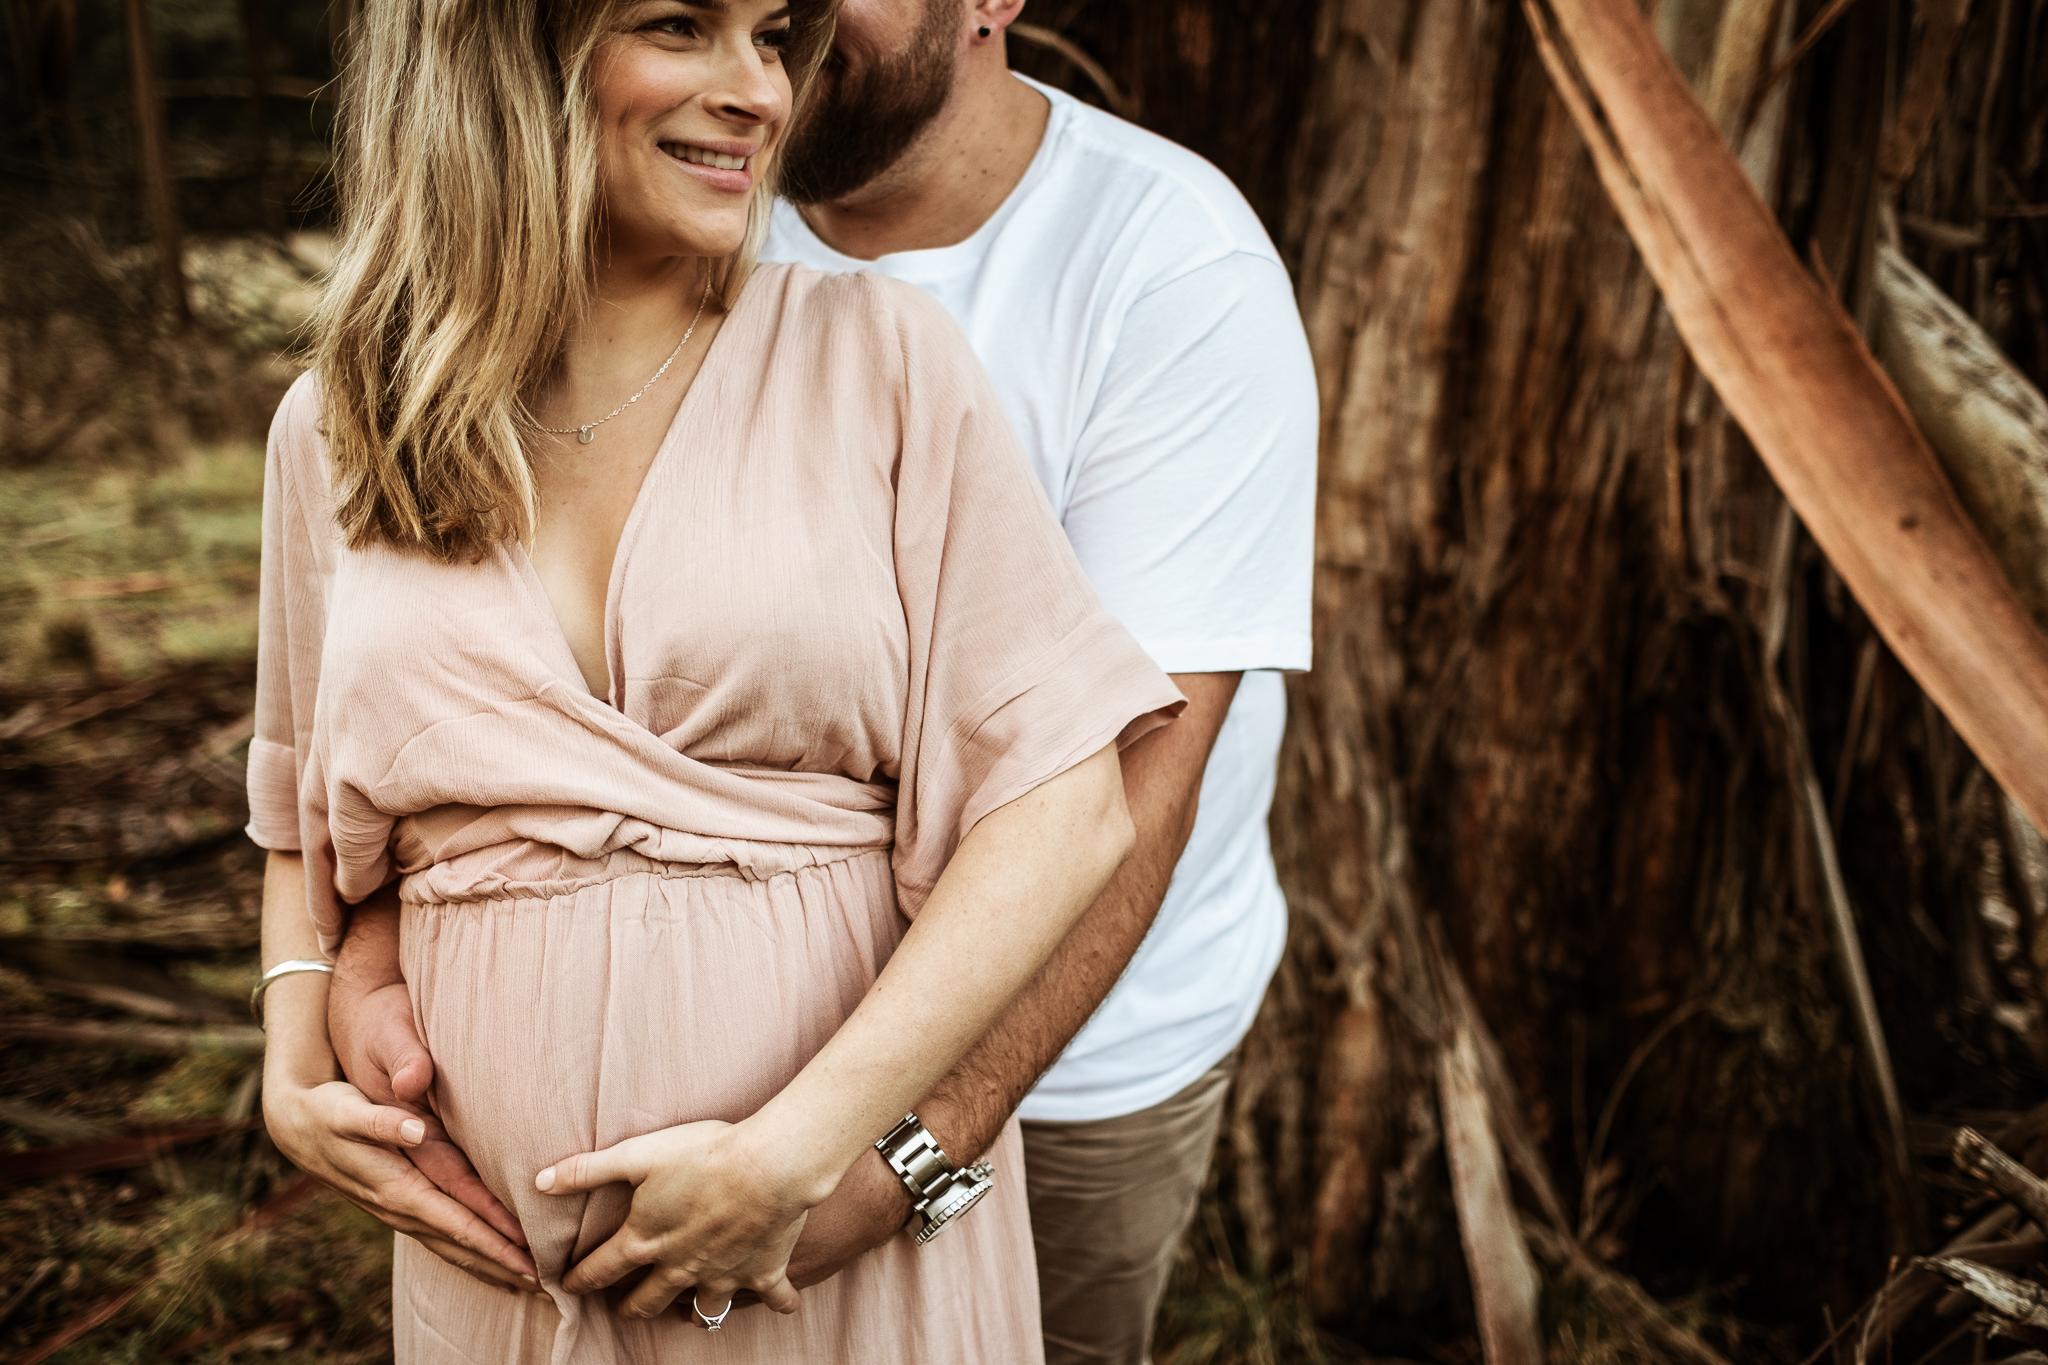 Melbourne Maternity Photographer (9 of 10).jpg